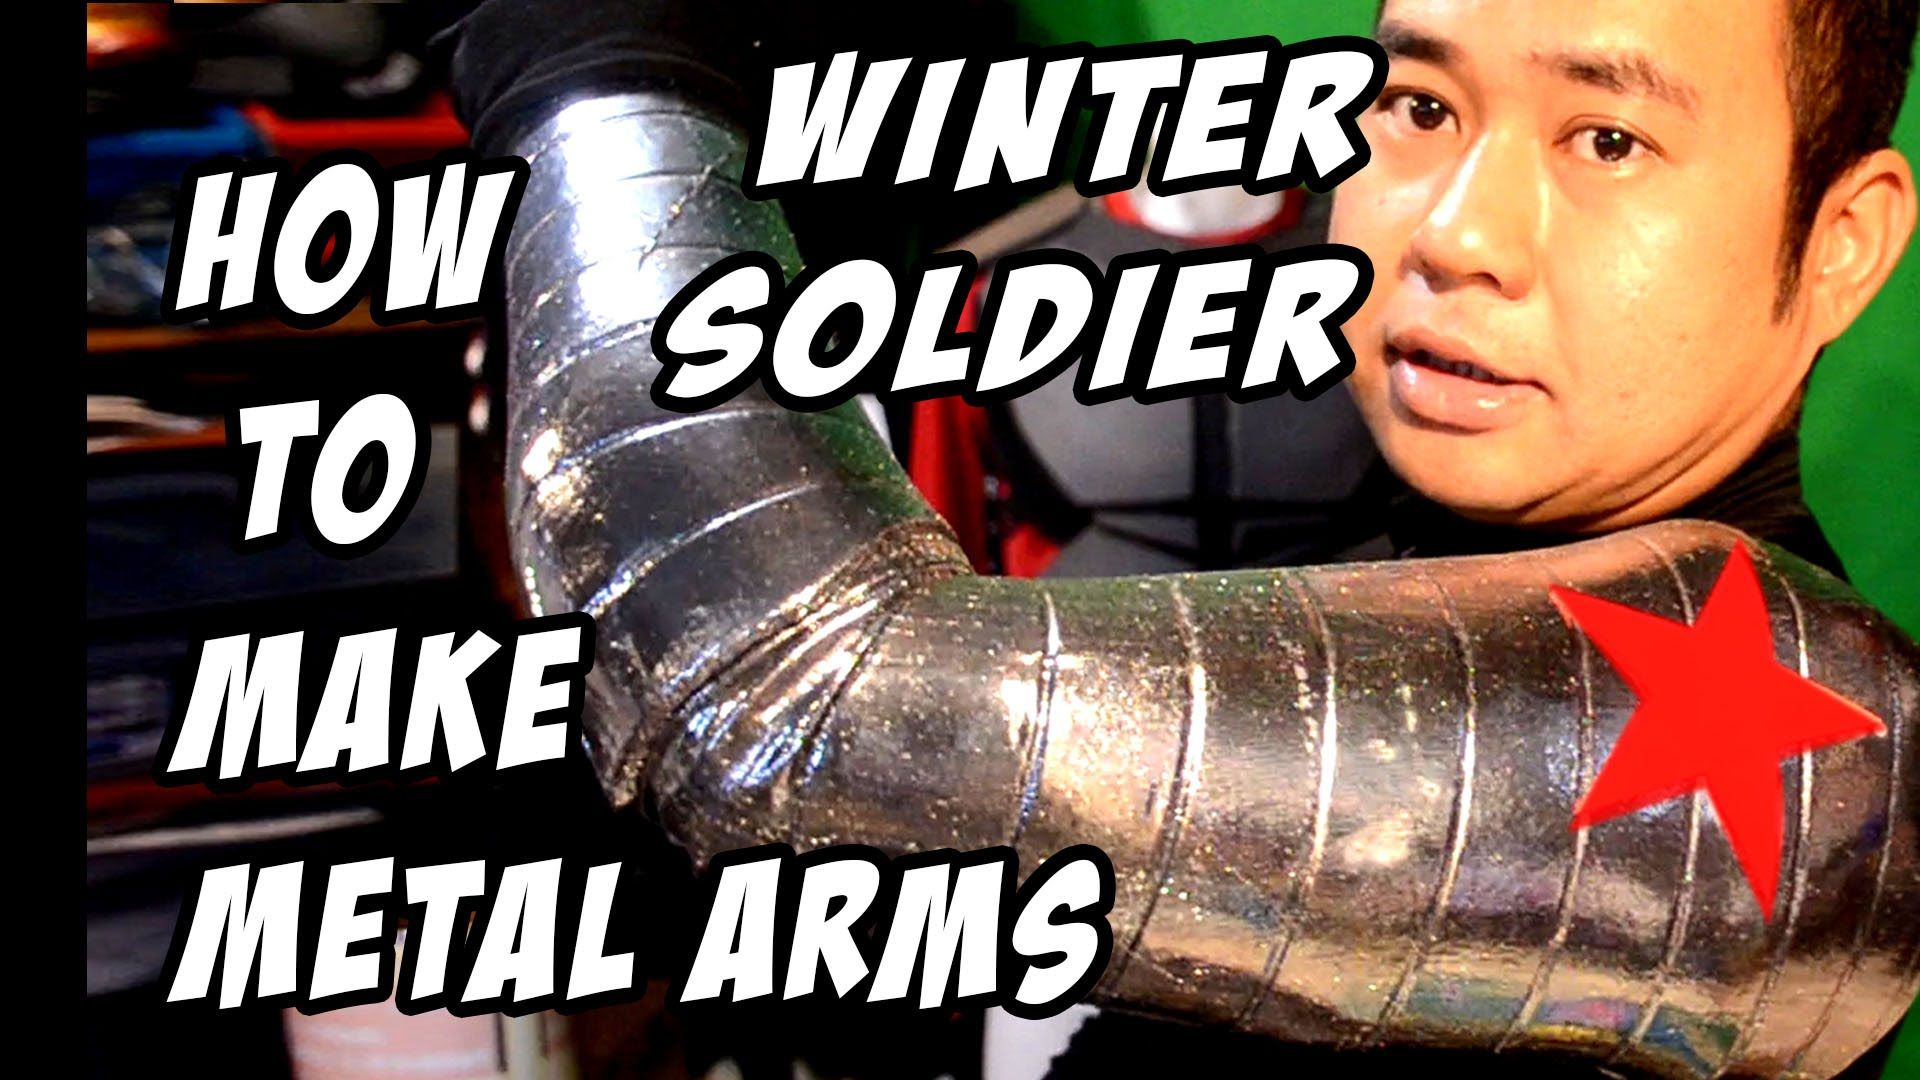 How to do it yourself tutorial video on how to make a winter soldier how to make winter soldier metal arm diy cosplay costume solutioingenieria Choice Image